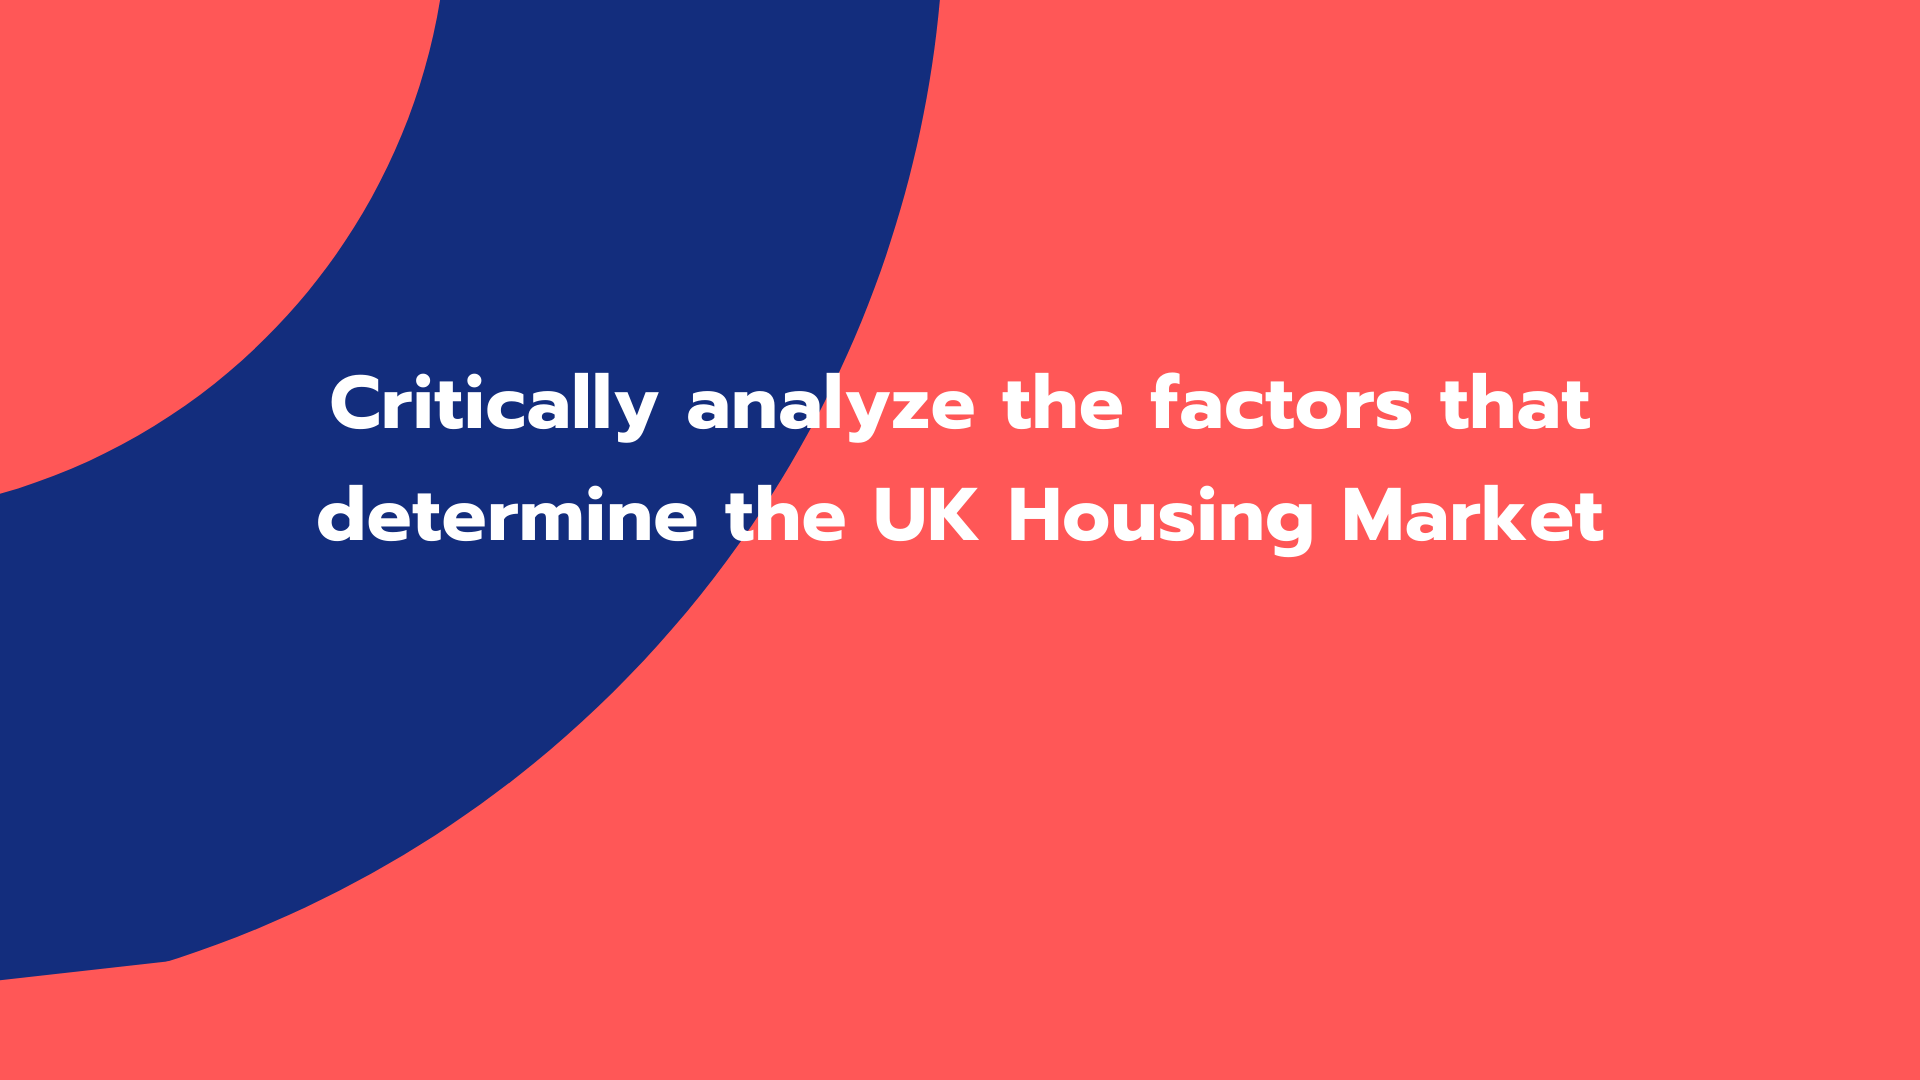 Critically analyze the factors that determine the UK Housing Market